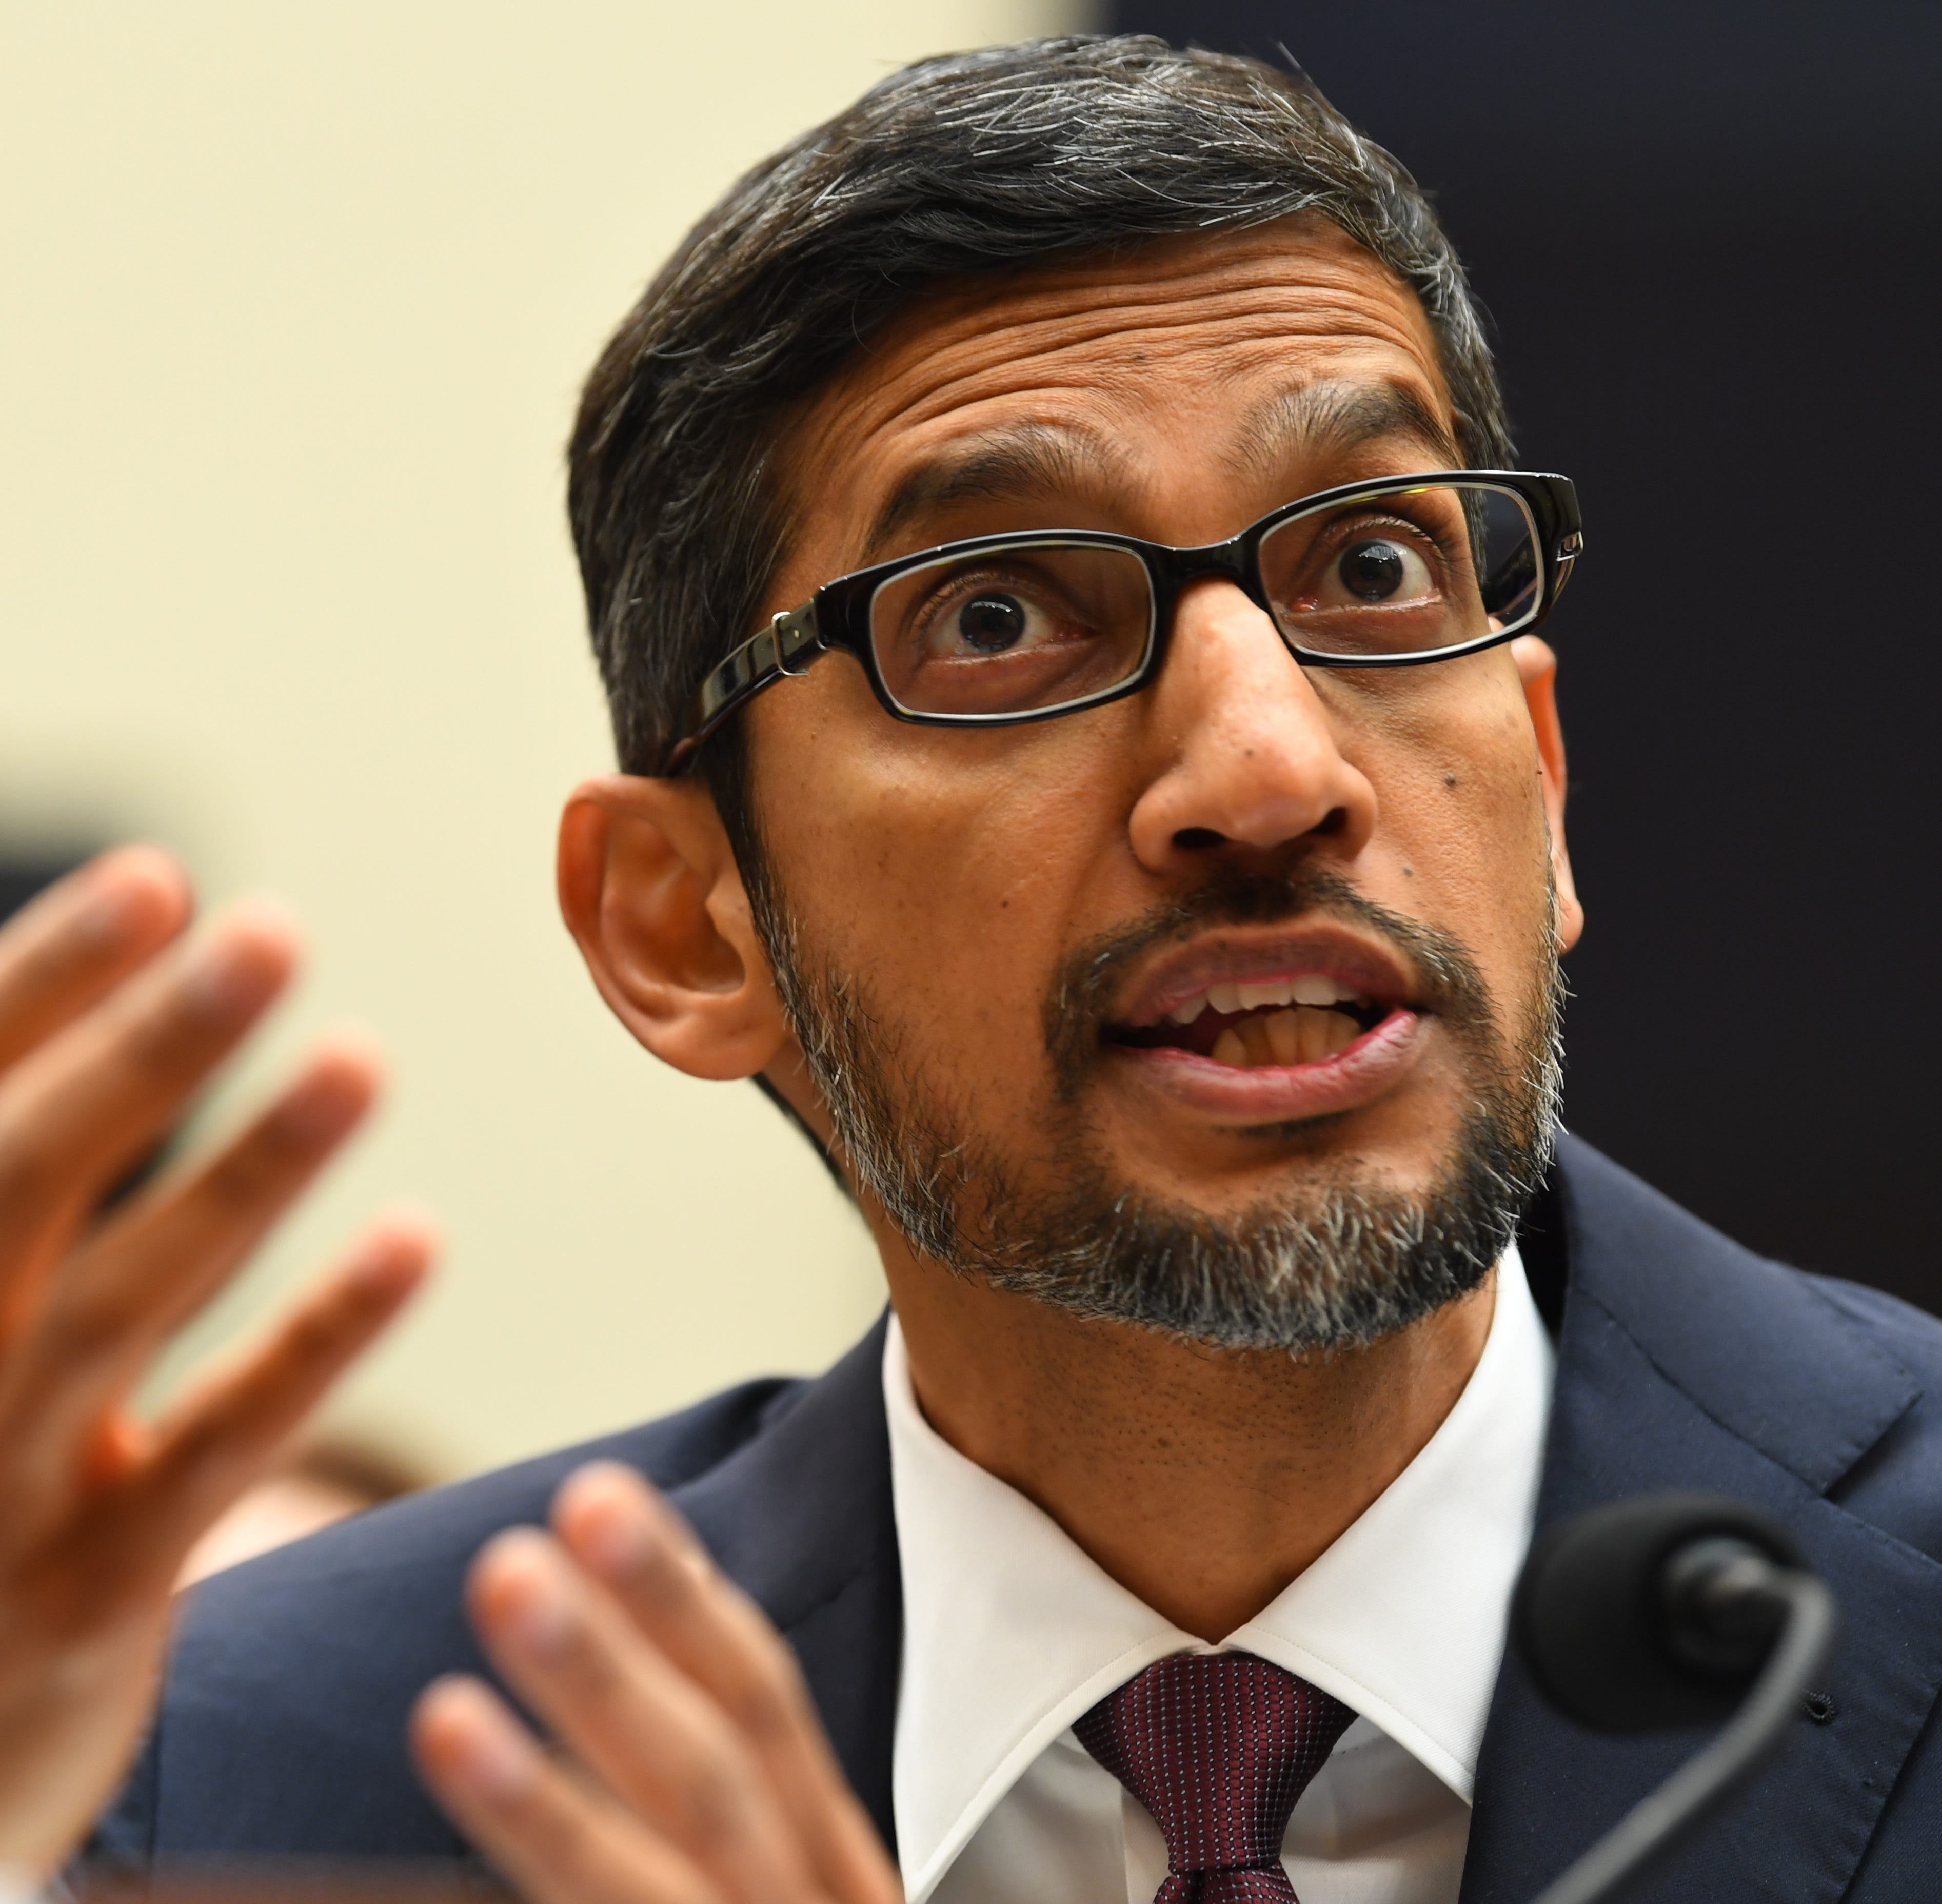 Google CEO Sundar Pichai testifies before the House Judiciary Committee, Tuesday, Dec. 11, 2018, in Washington.